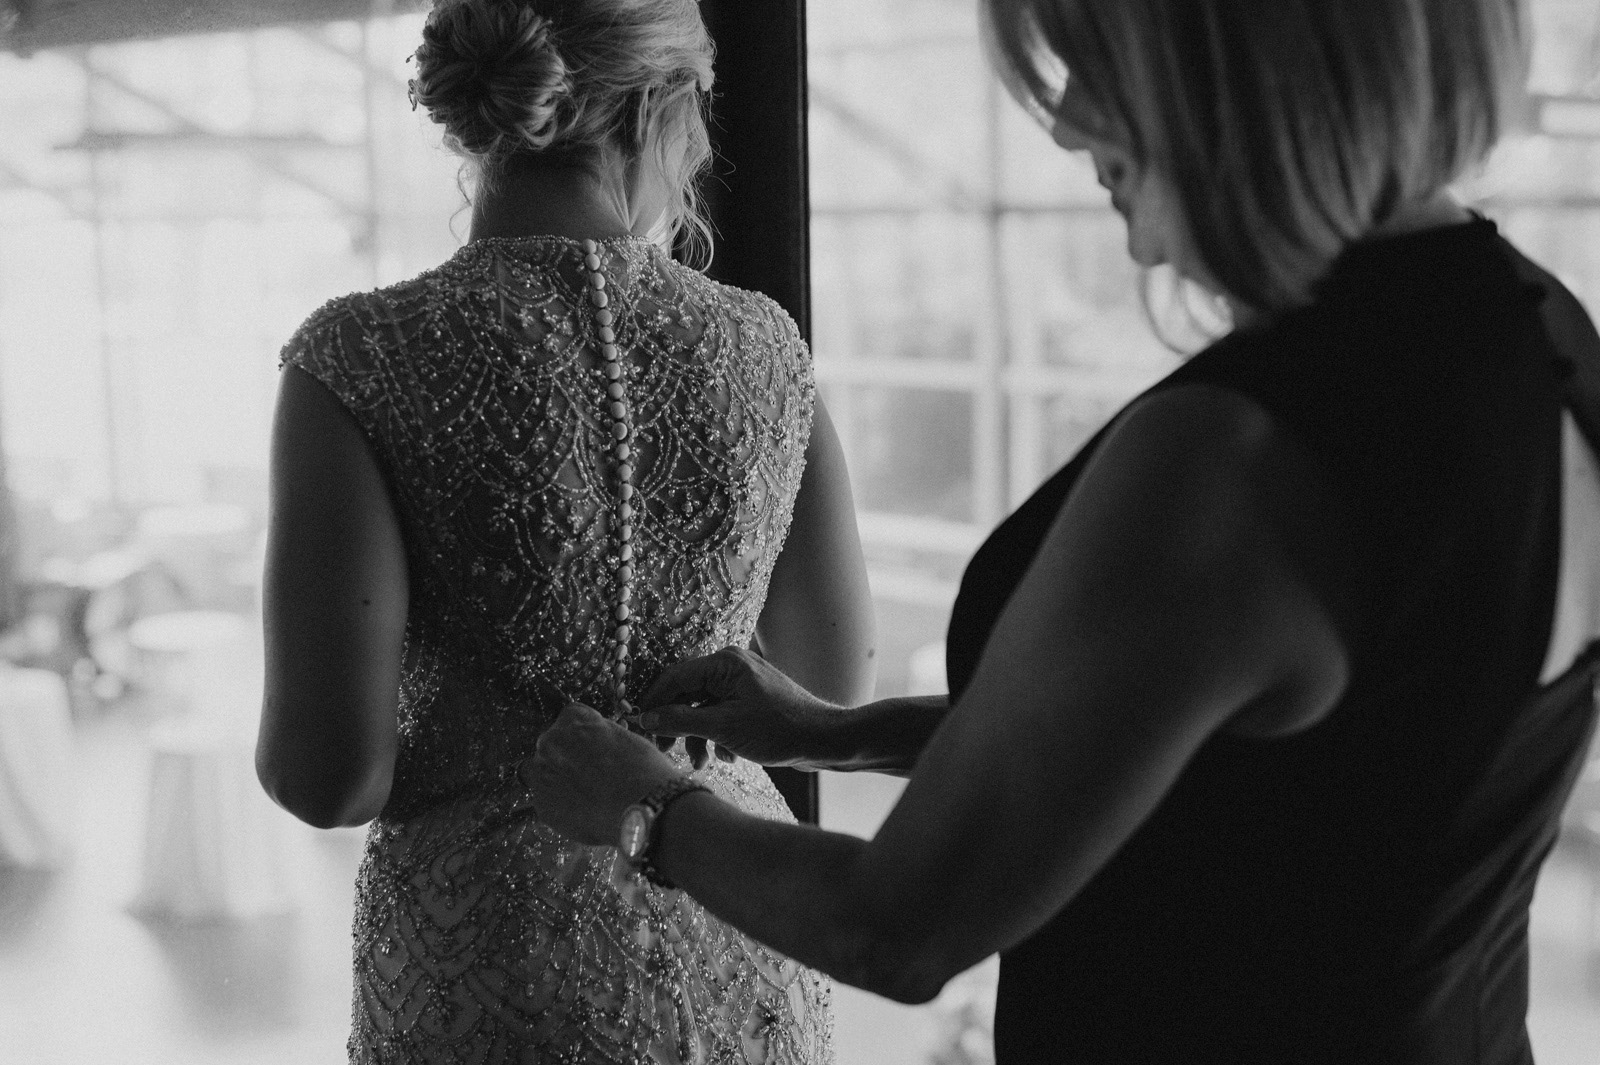 A stepfather watches as his daughter gets into her wedding dress | Iowa Wedding Photographer Brian Davis